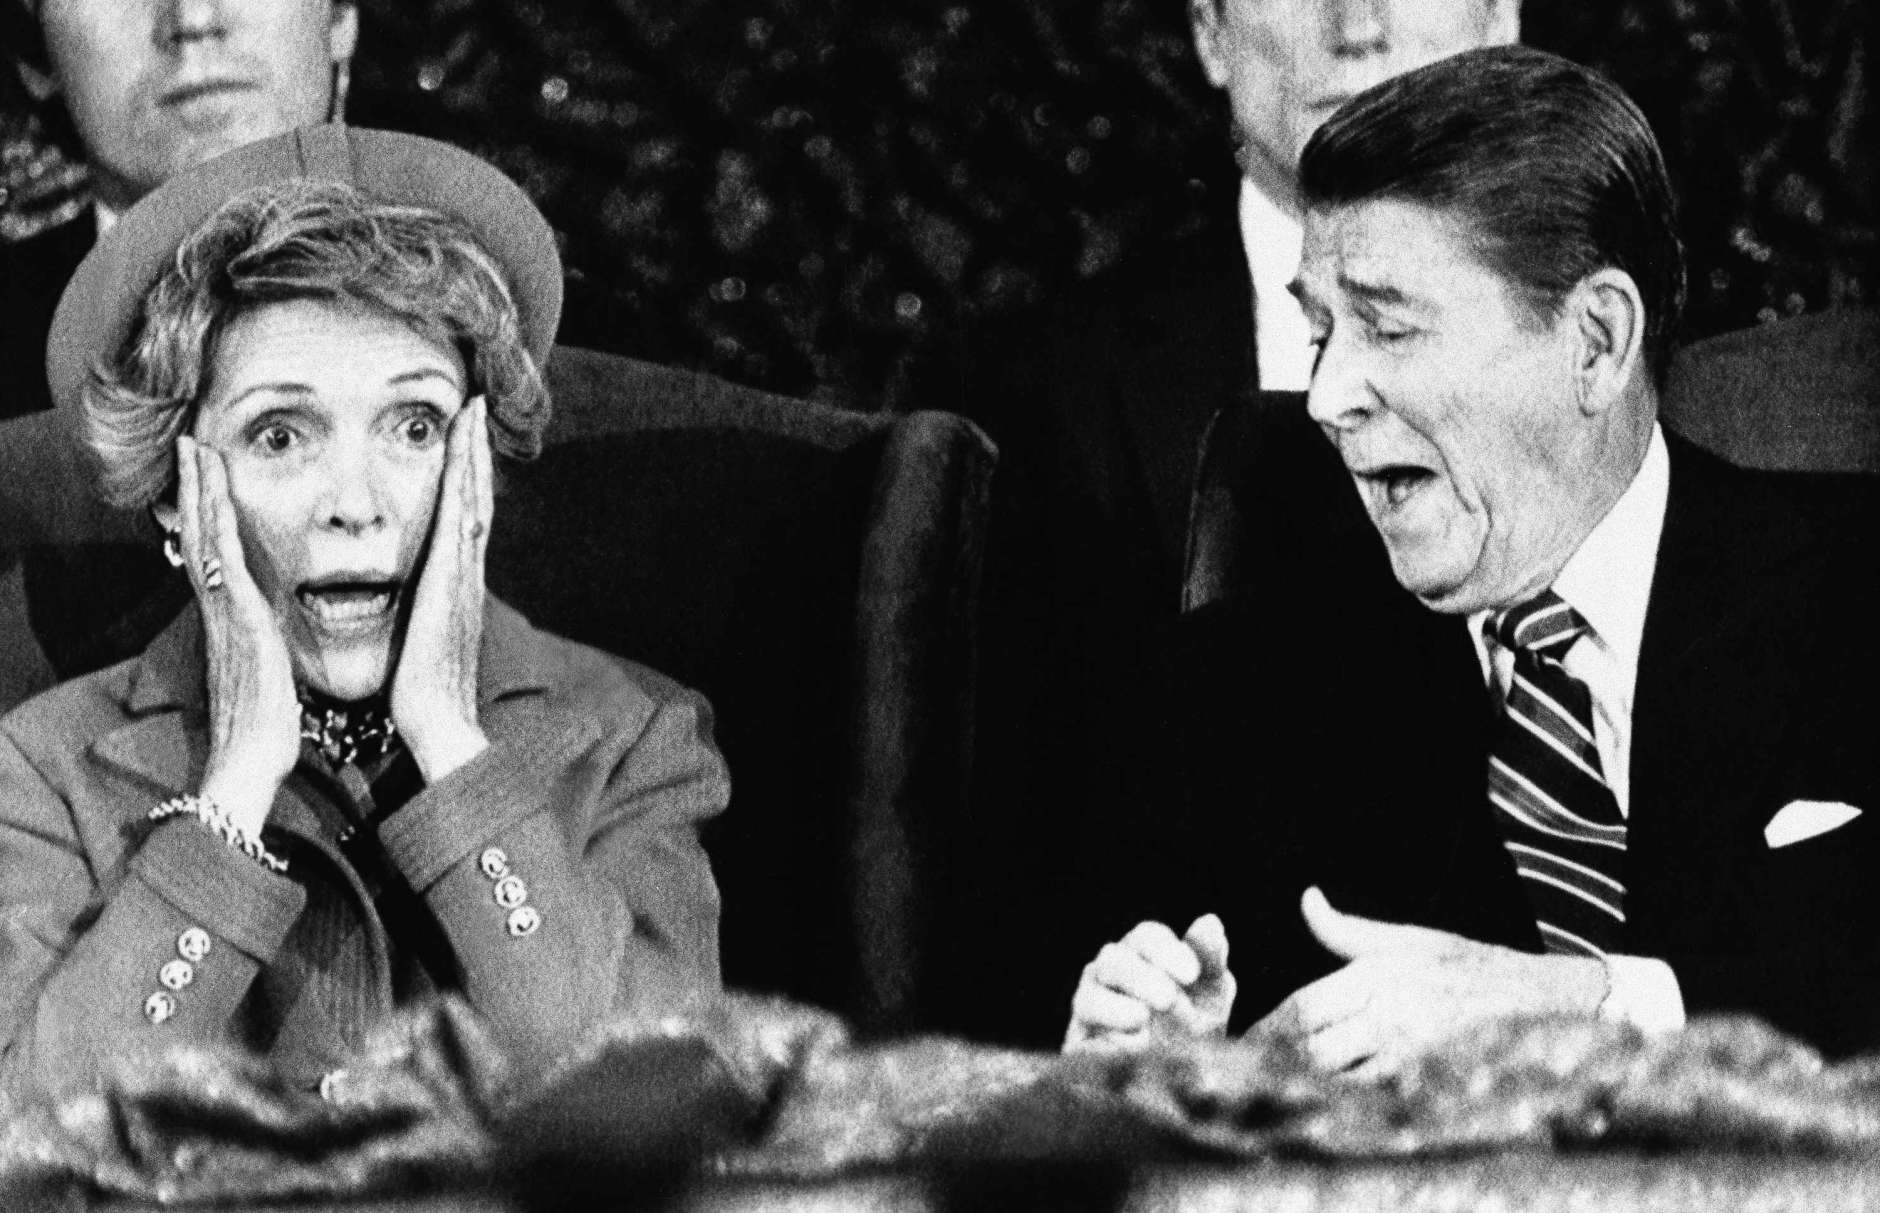 President  Ronald Reagan and wife Nancy  react after Mrs. Reagan sat down after speaking and forgot to introduce the President at the Capital Center in Landover, Md., Monday, Jan. 21, 1985, during an event held for those who would have participated in the inaugural parade, which was canceled because of bad weather. (AP Photo/Scott Stewart)